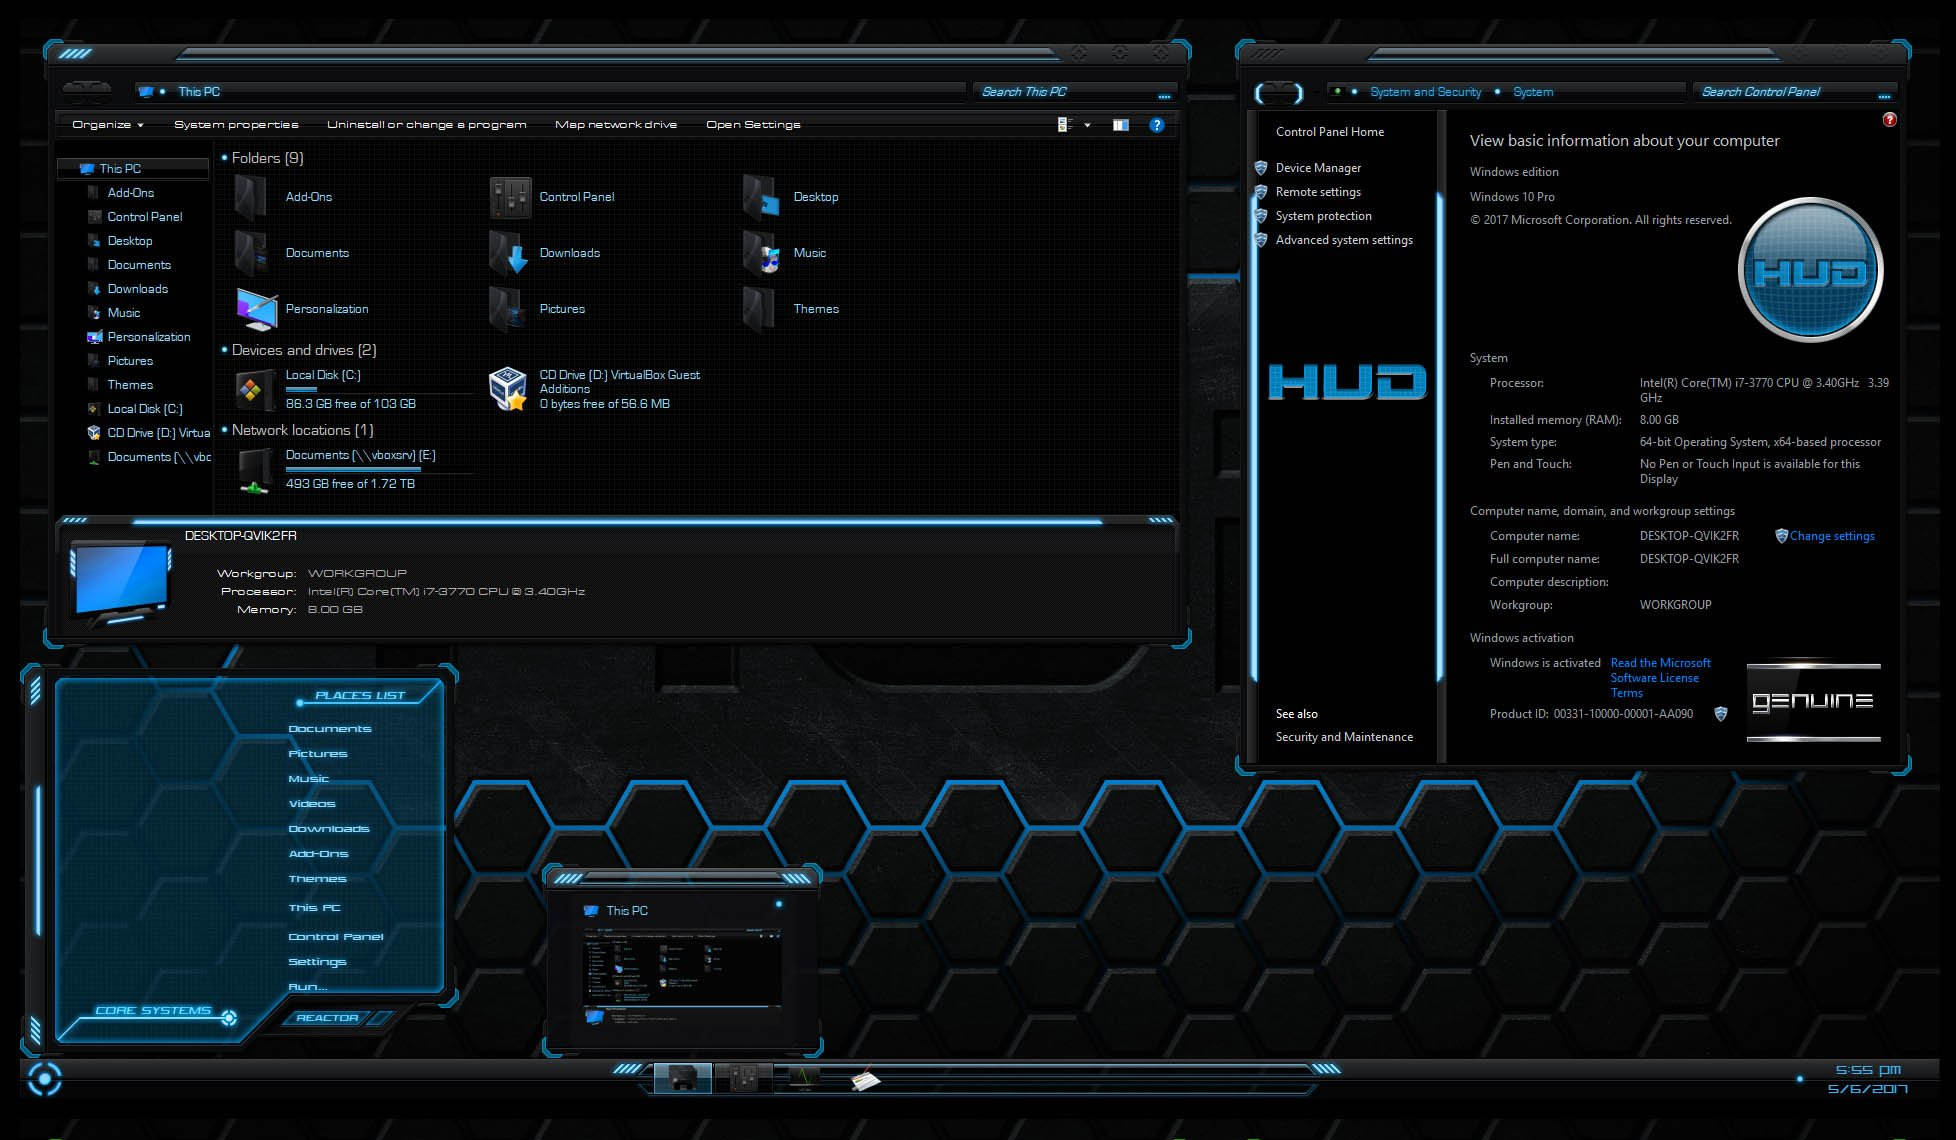 Download HUD Theme Pack 4 Colors Included for Windows 10 Creators